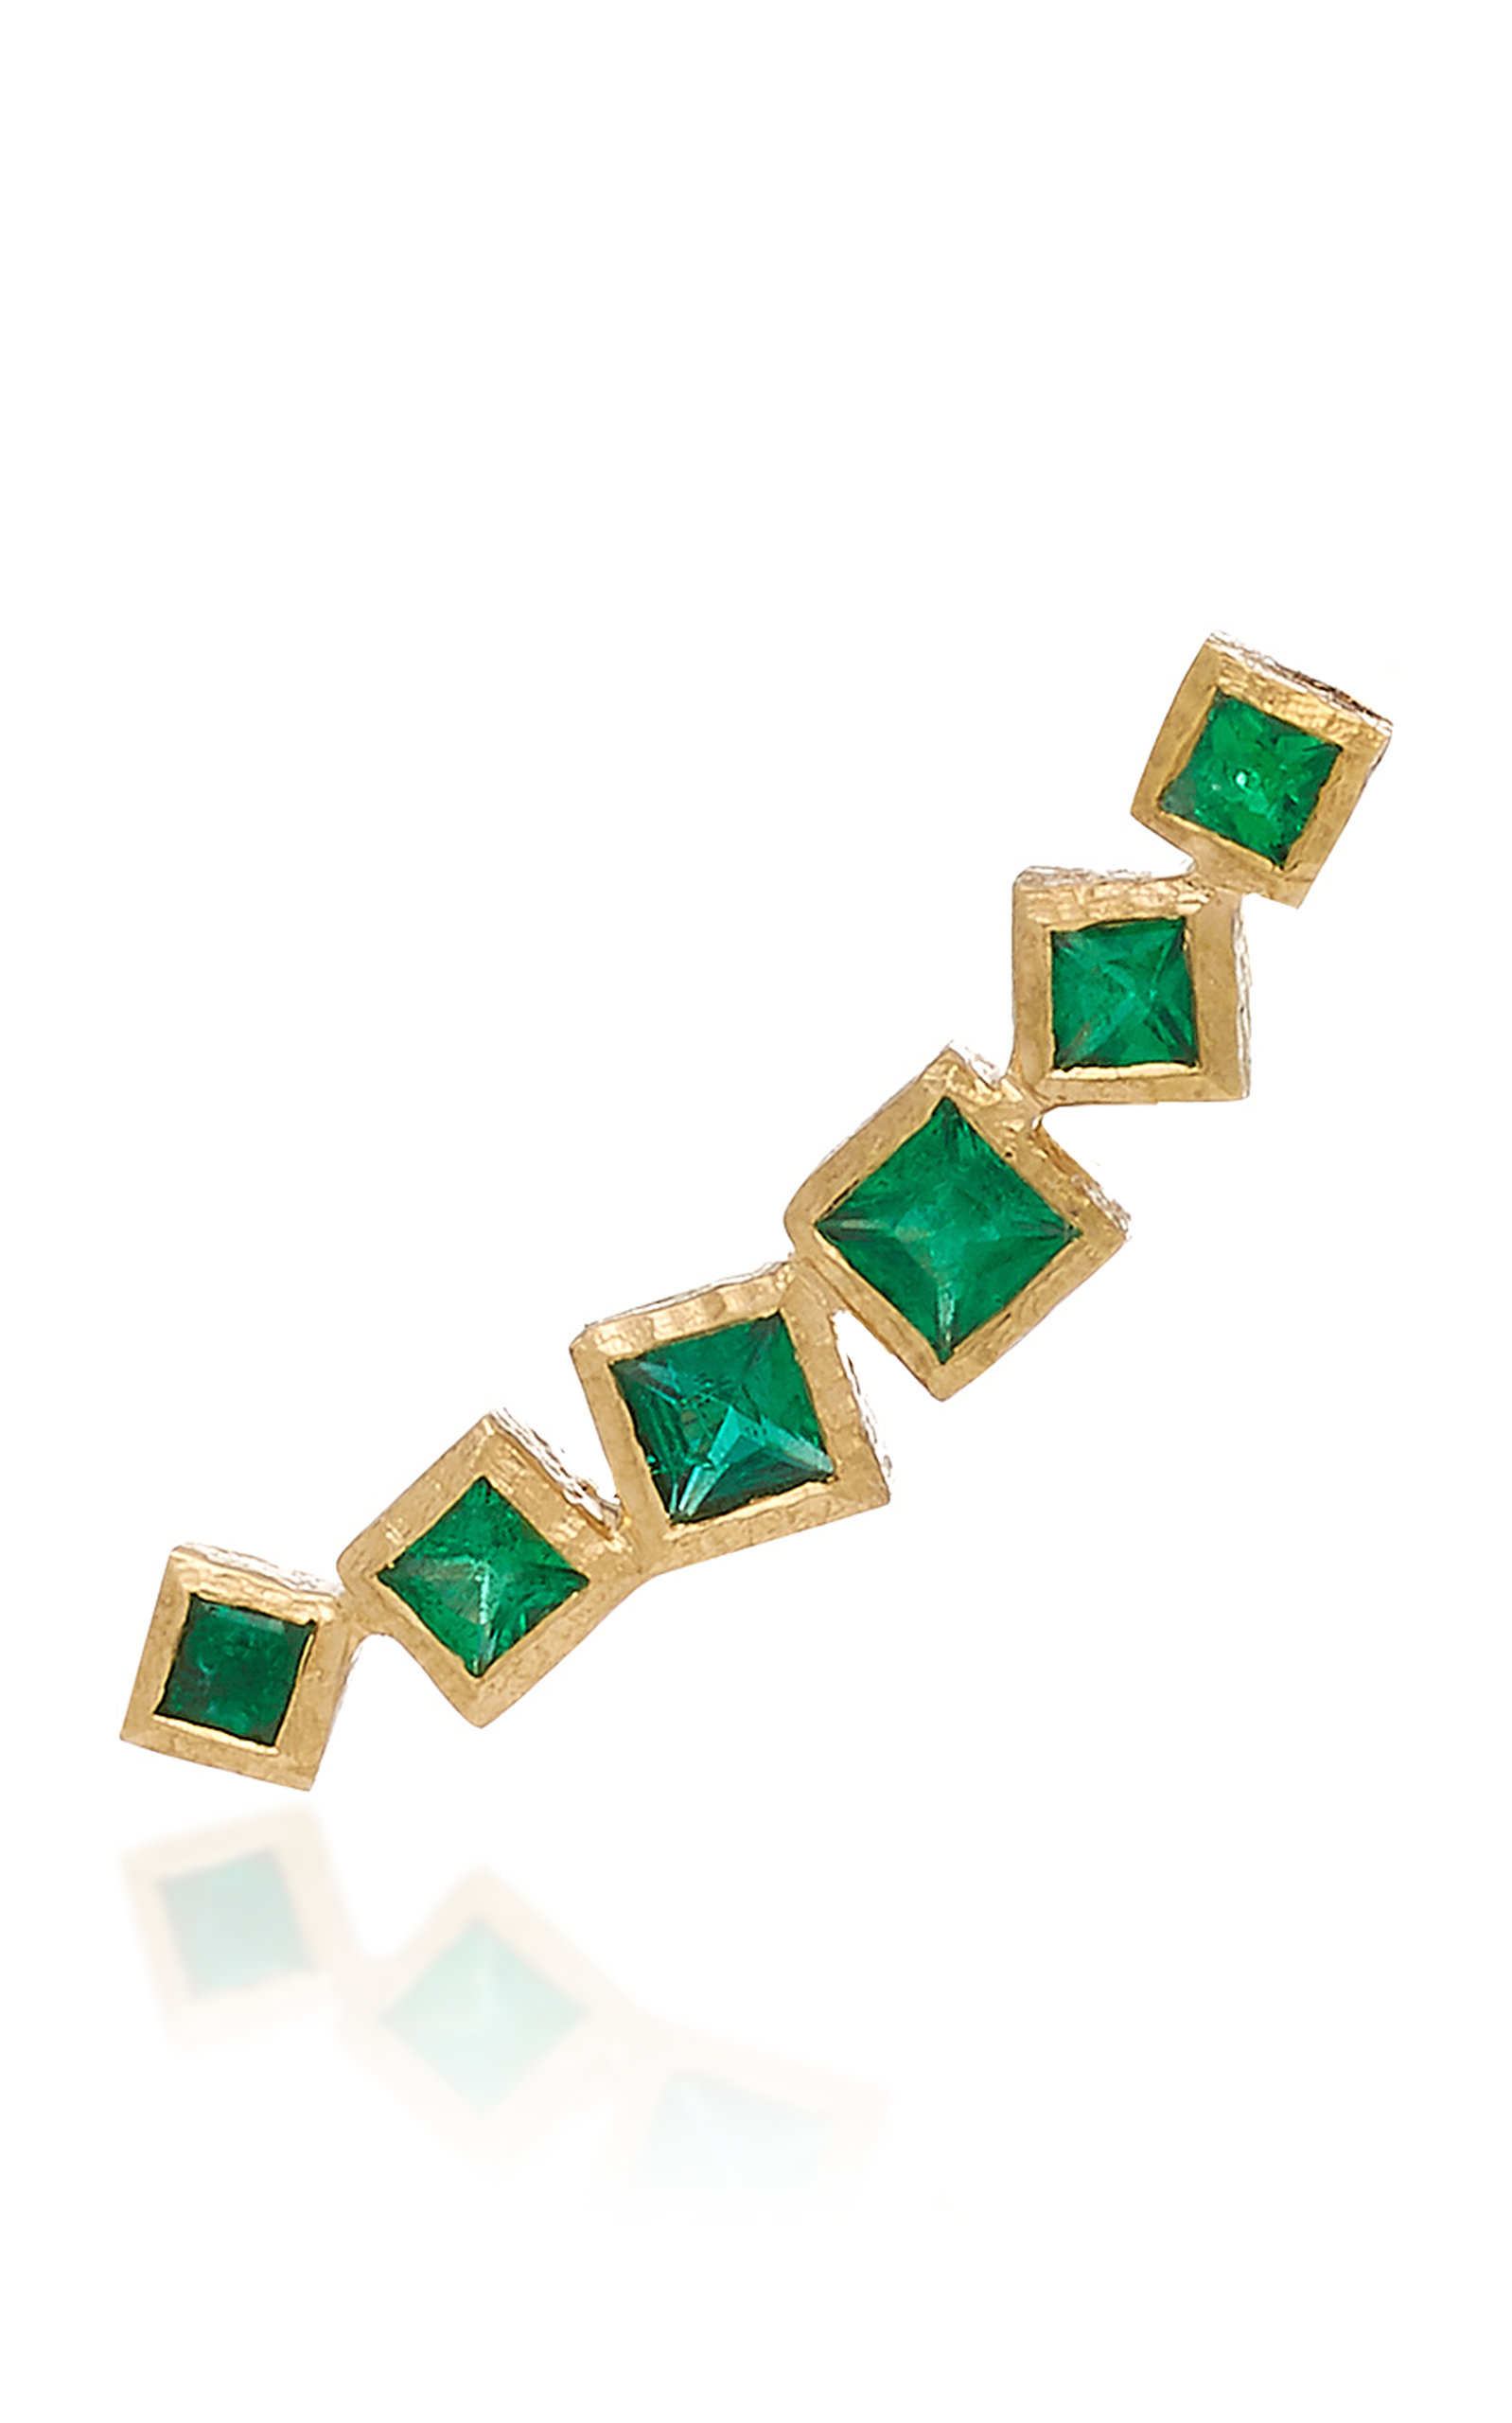 OCTAVIA ELIZABETH IVY GOLD AND EMERALD EAR CLIMBER